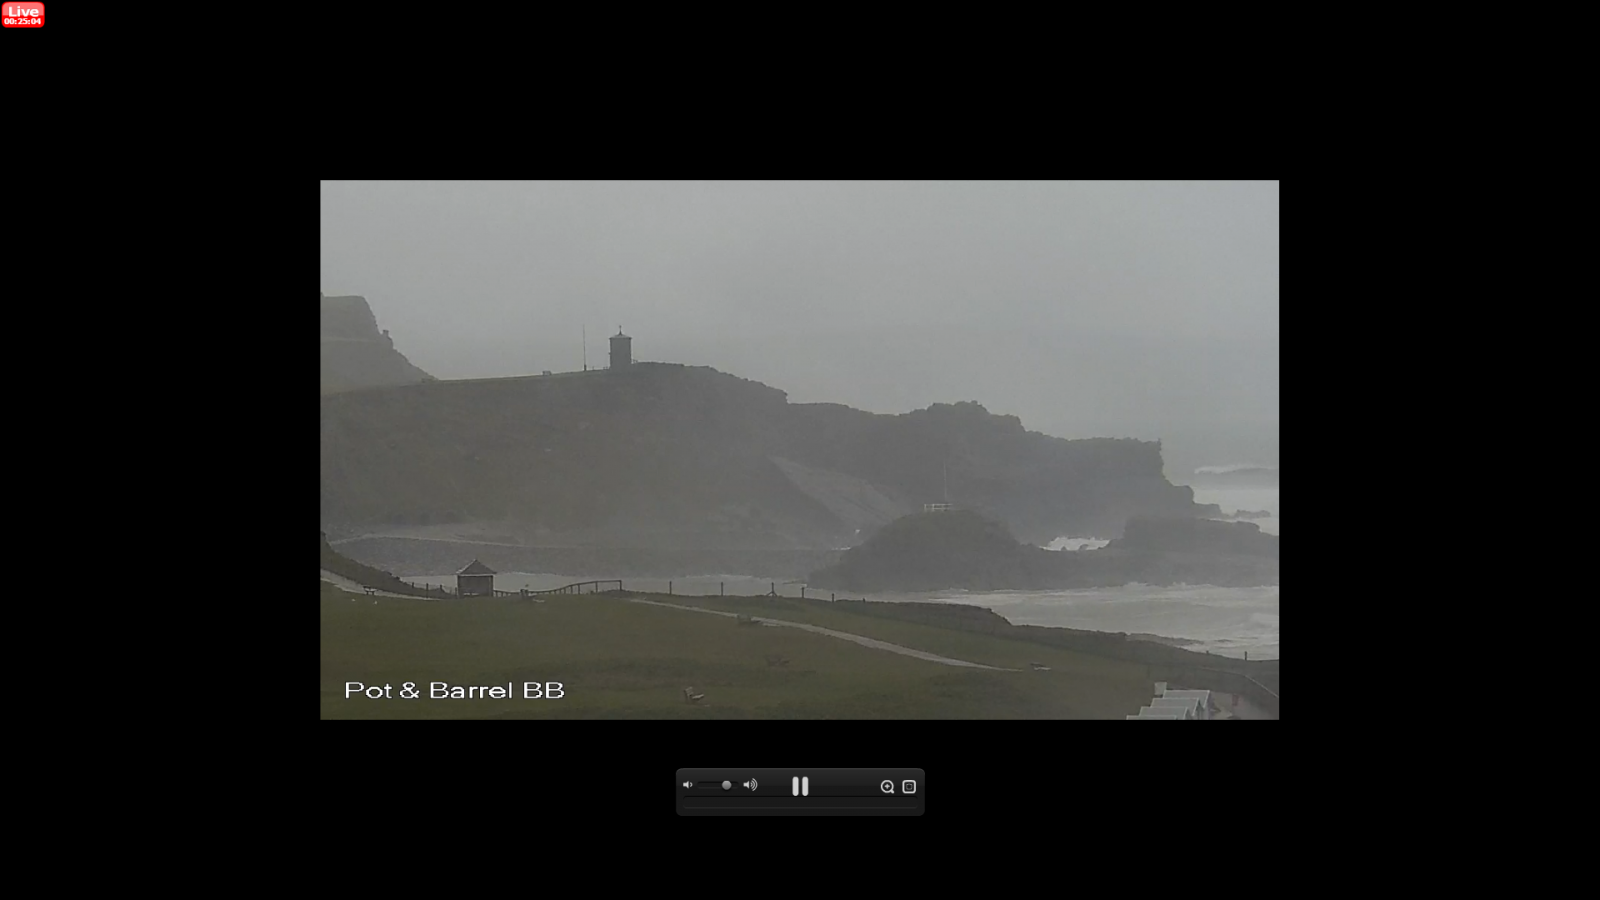 170306wc-2 Todays screenshot from webcam. Approx 1 hour to high tide on a quiet morning in Bude